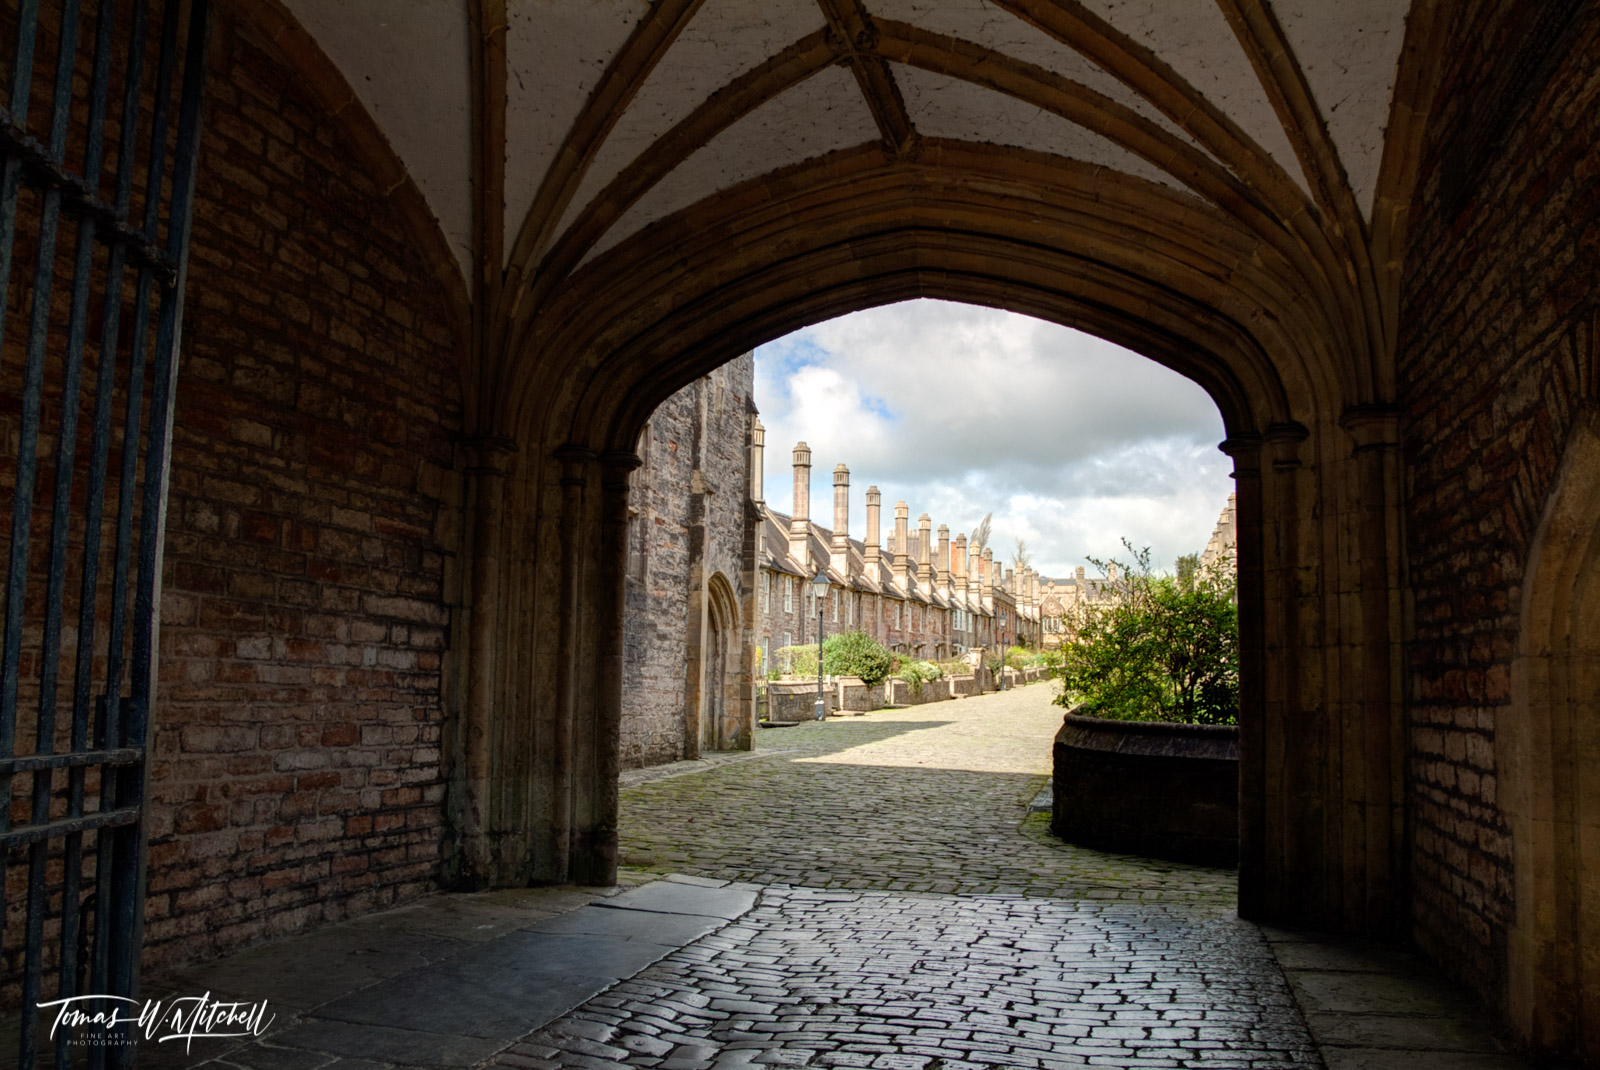 Limited Edition of 50 Museum Grade, Fine Art Prints. Wells Cathedral and Vicars' Close are amazing places to visit and photograph...